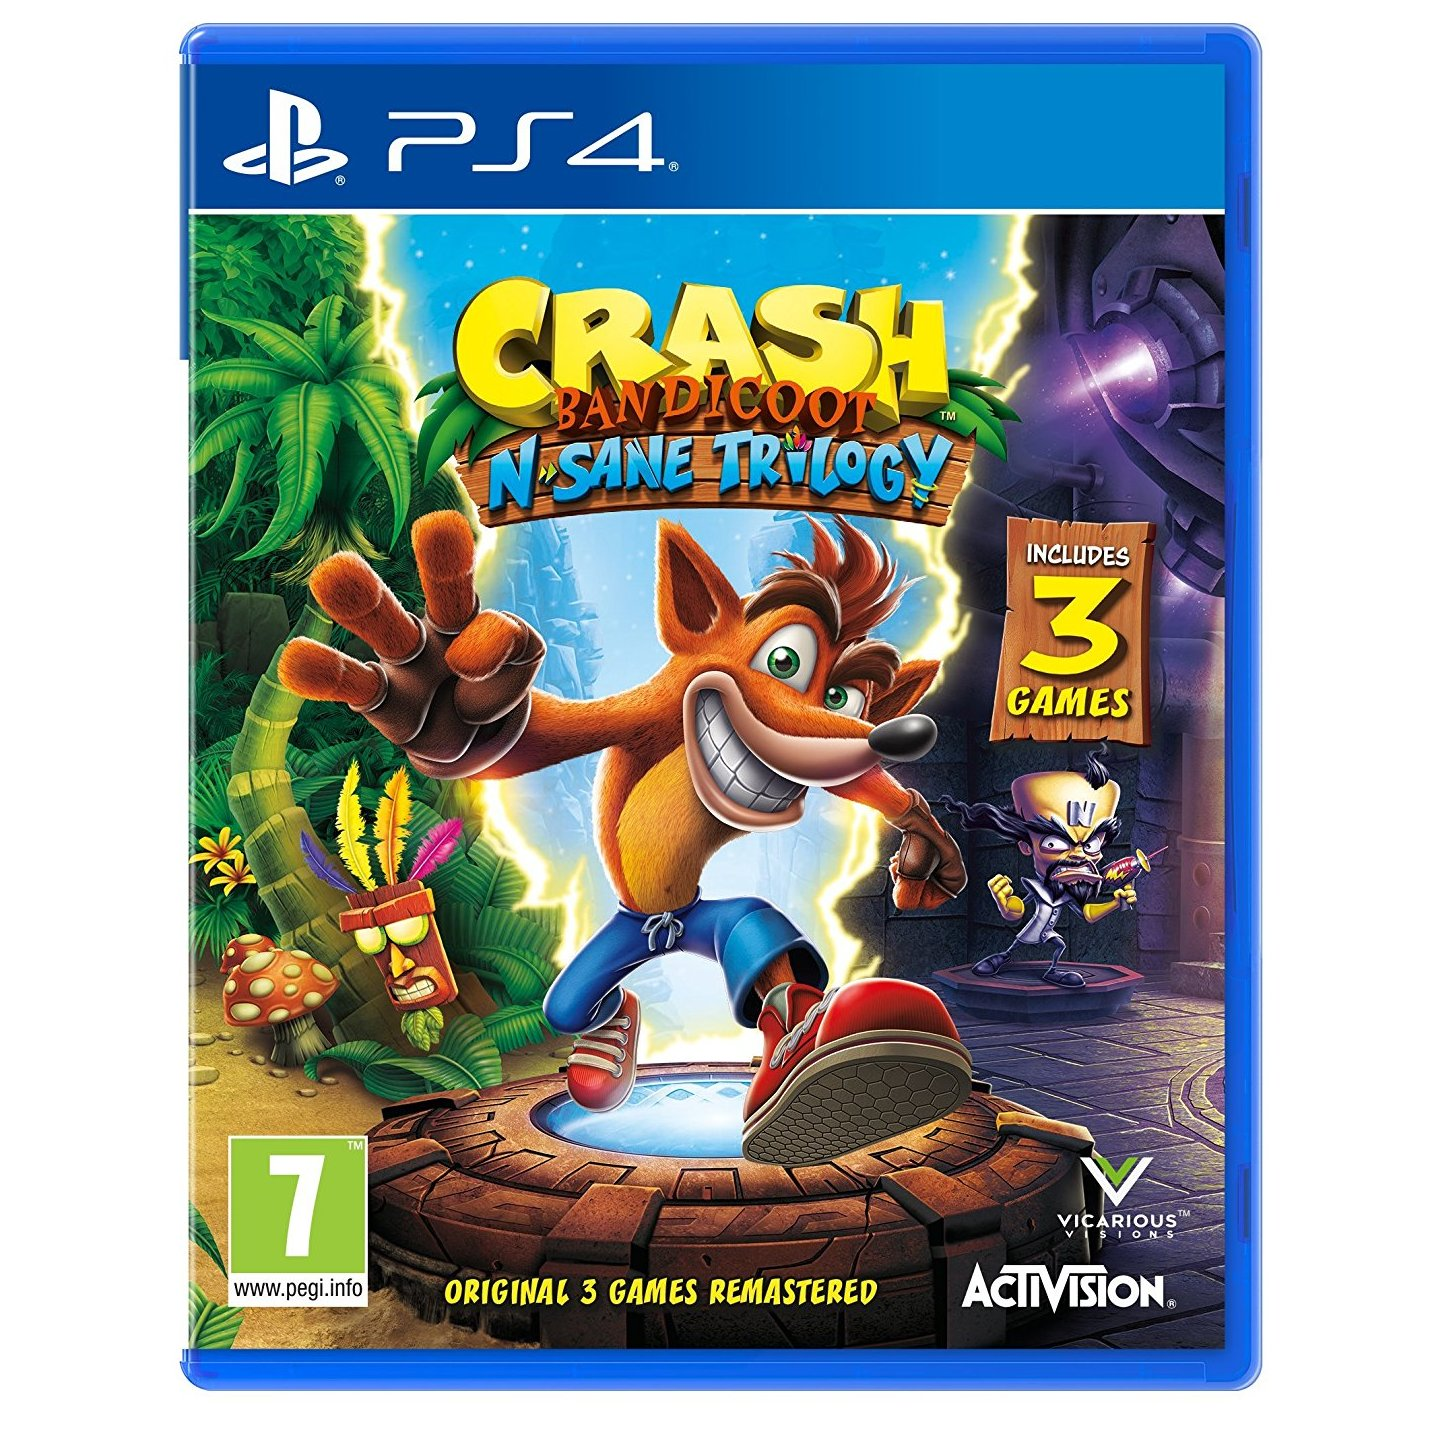 Ps4 Uncharted The Lost Legacy Game Price In Oman Sale On Ps4uncharted Reg 3 Crash Bandicoot N Sane Trilogy